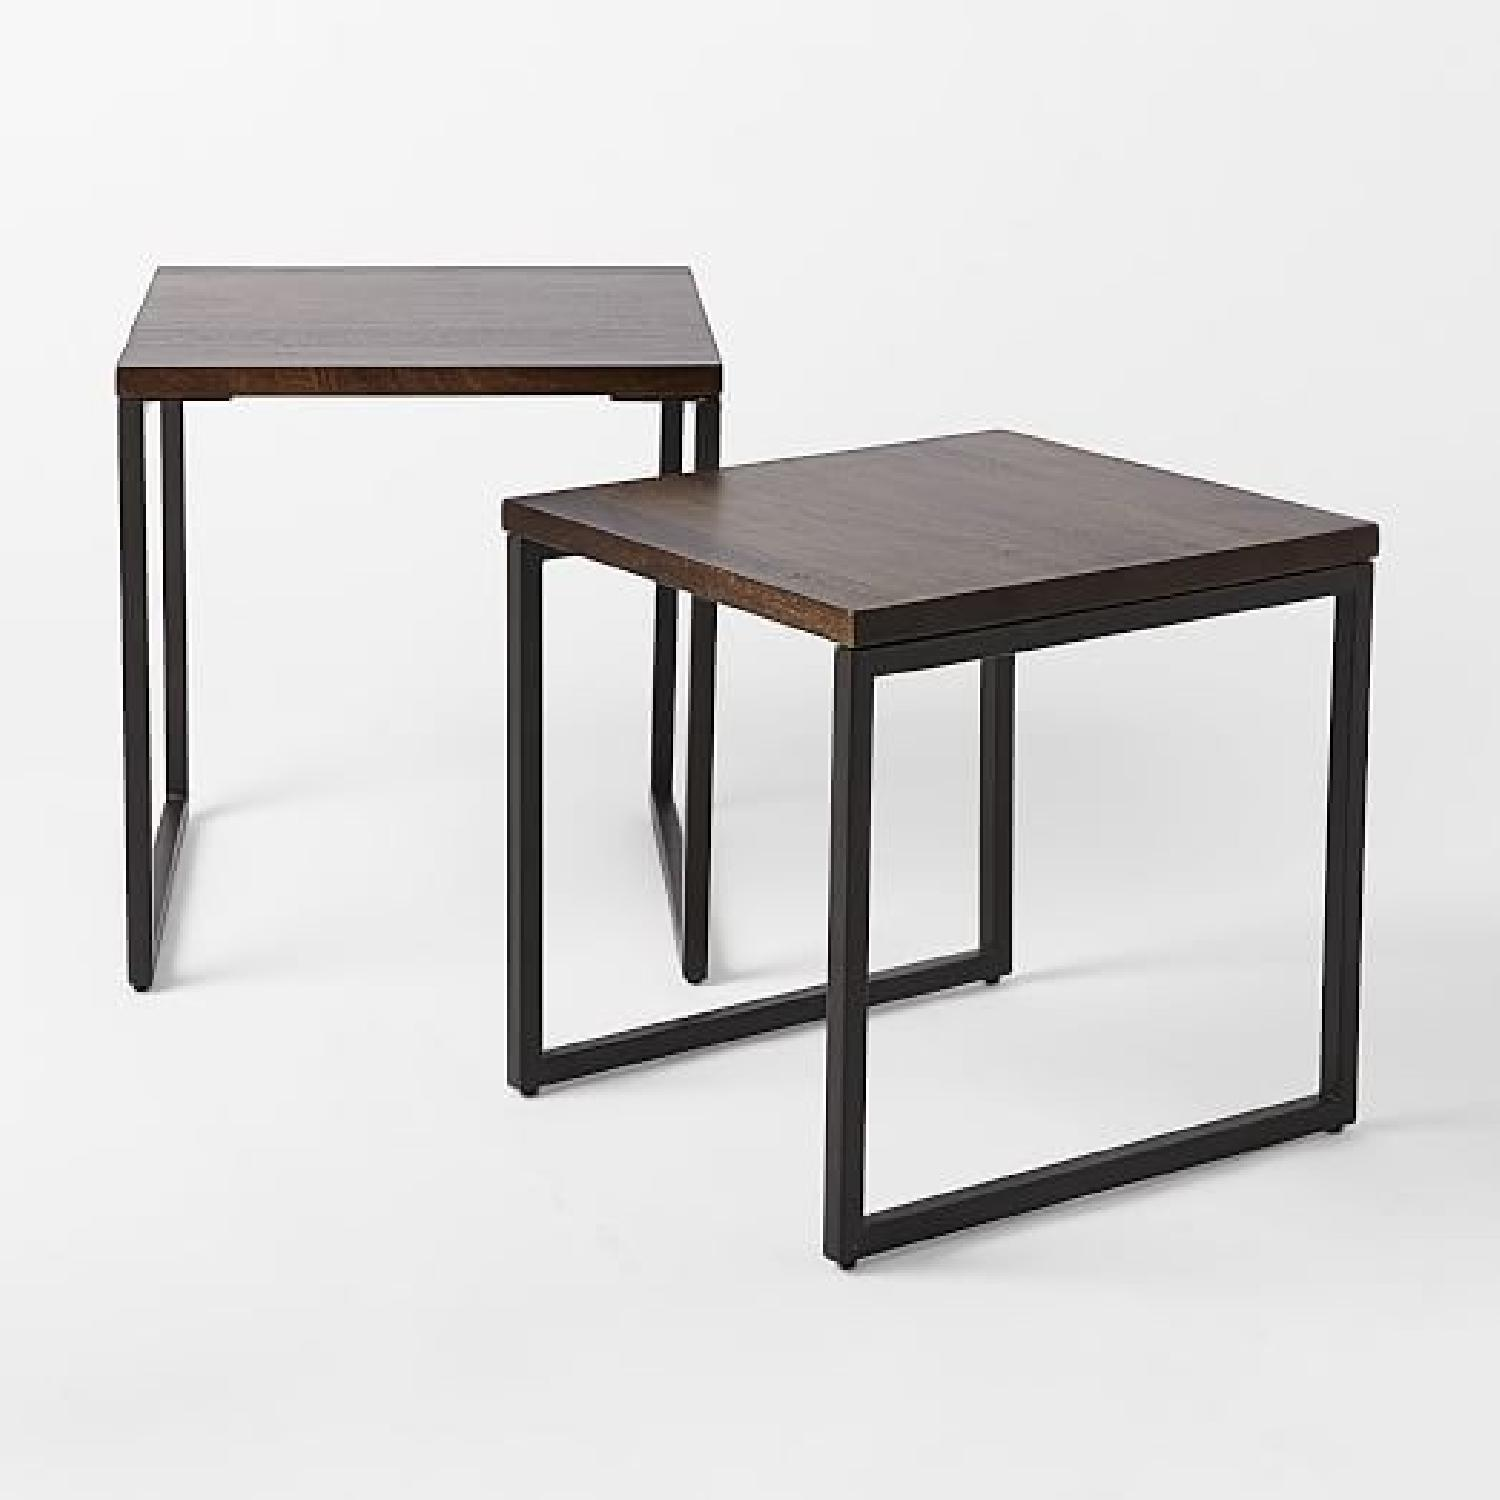 West Elm Box Frame Nesting Tables w/ Wood Top - image-5